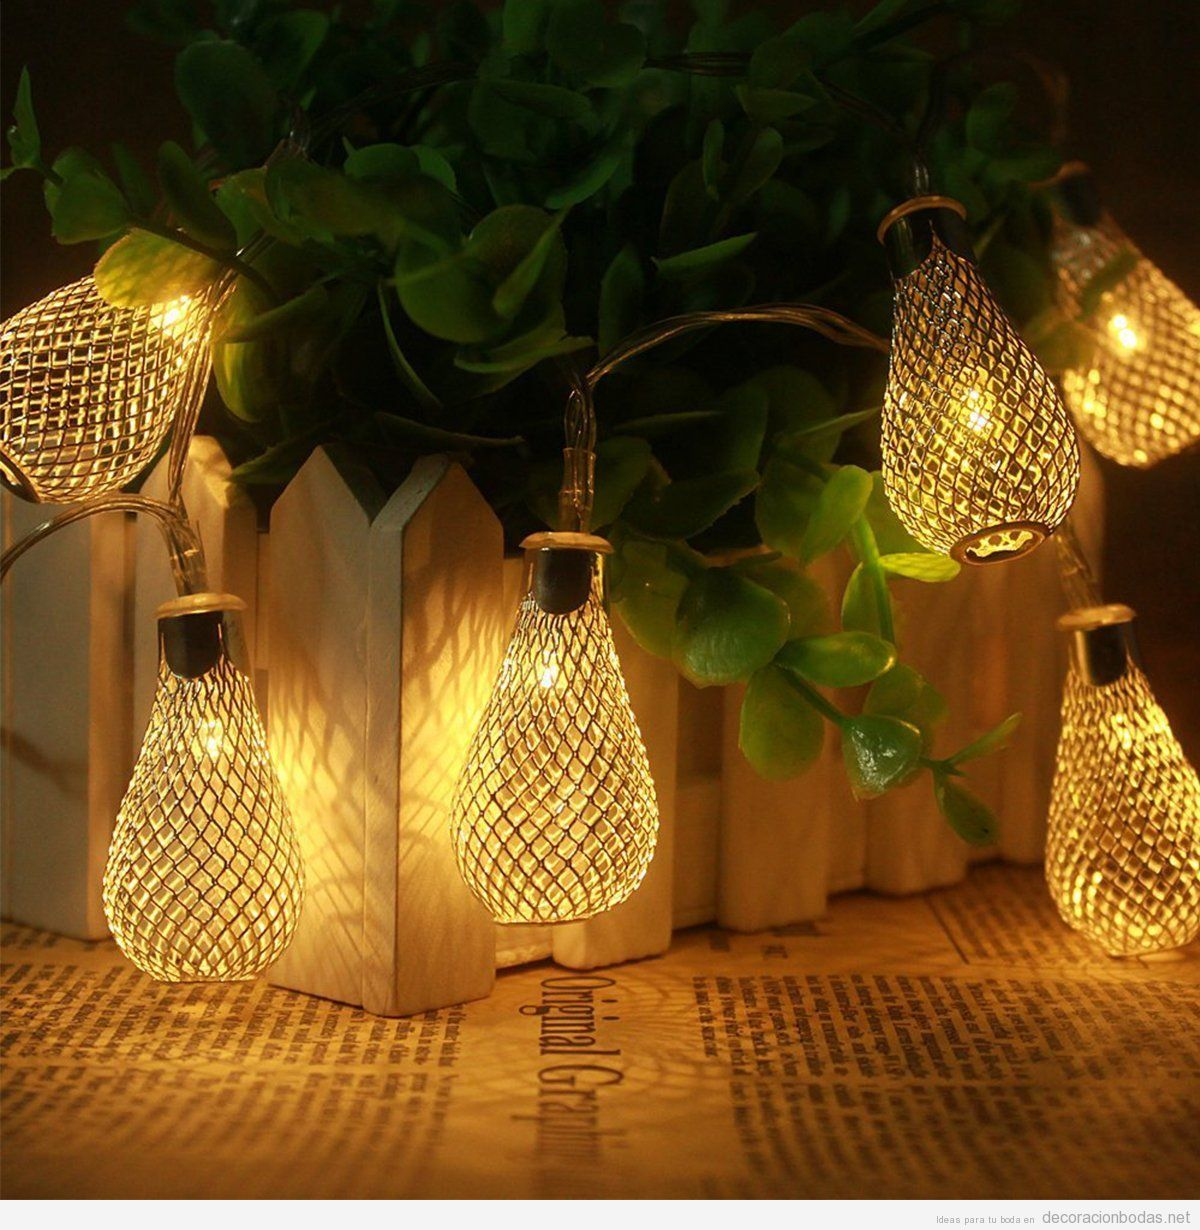 Sal n archivos decoraci n bodas for Luces verdes para jardin